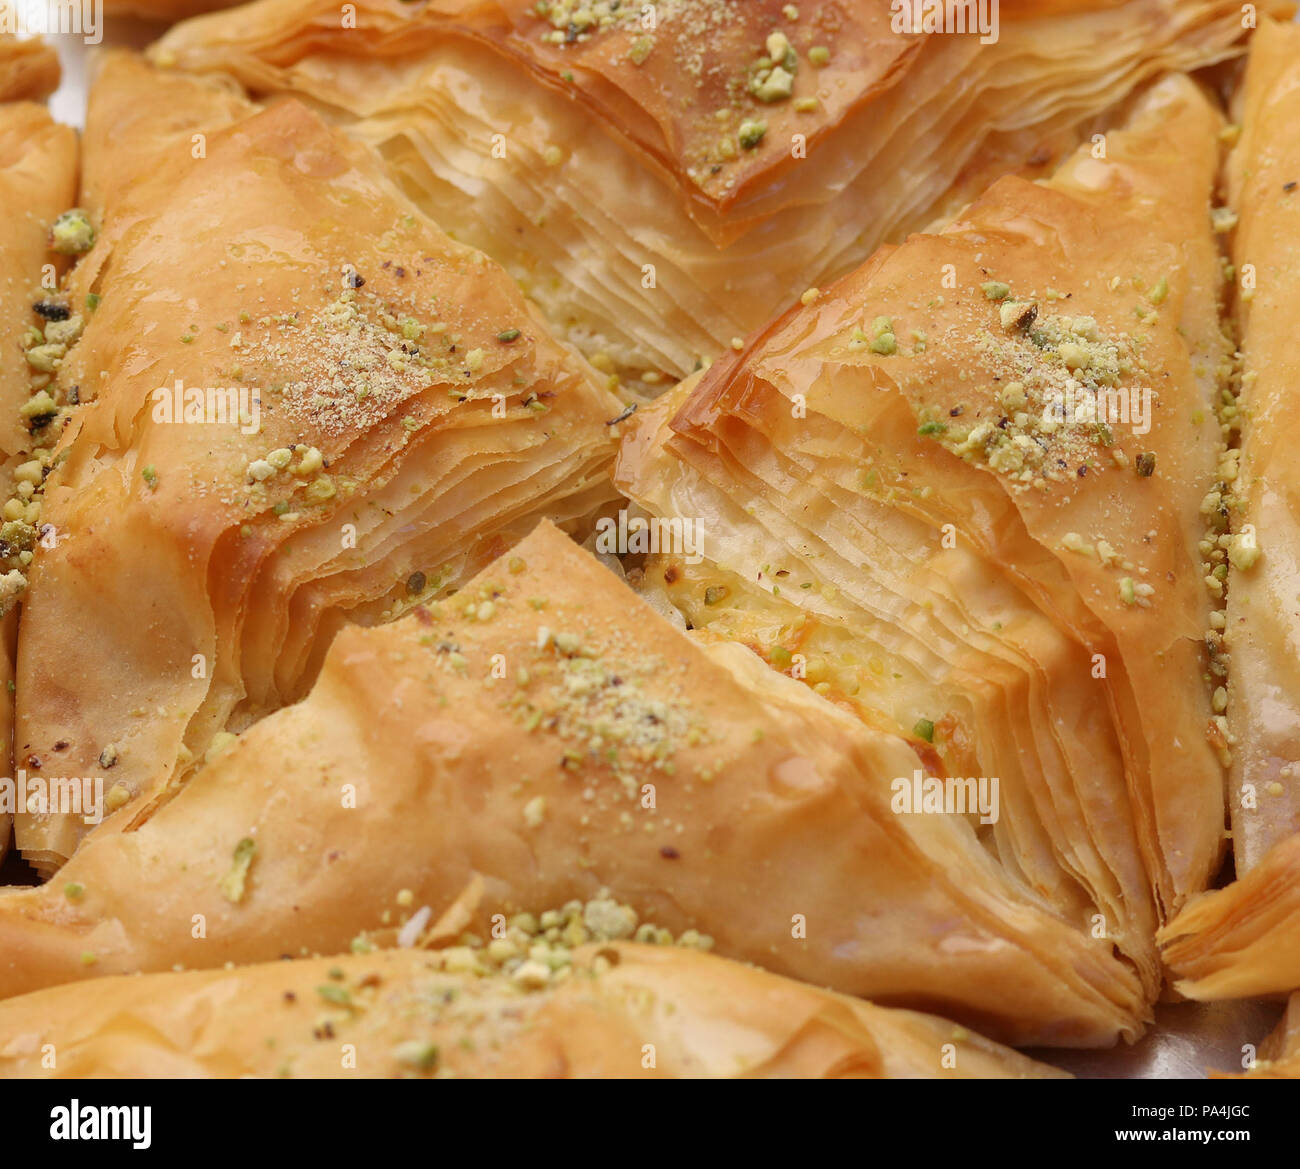 Baklava made with filo dough, honey and nuts - Stock Image